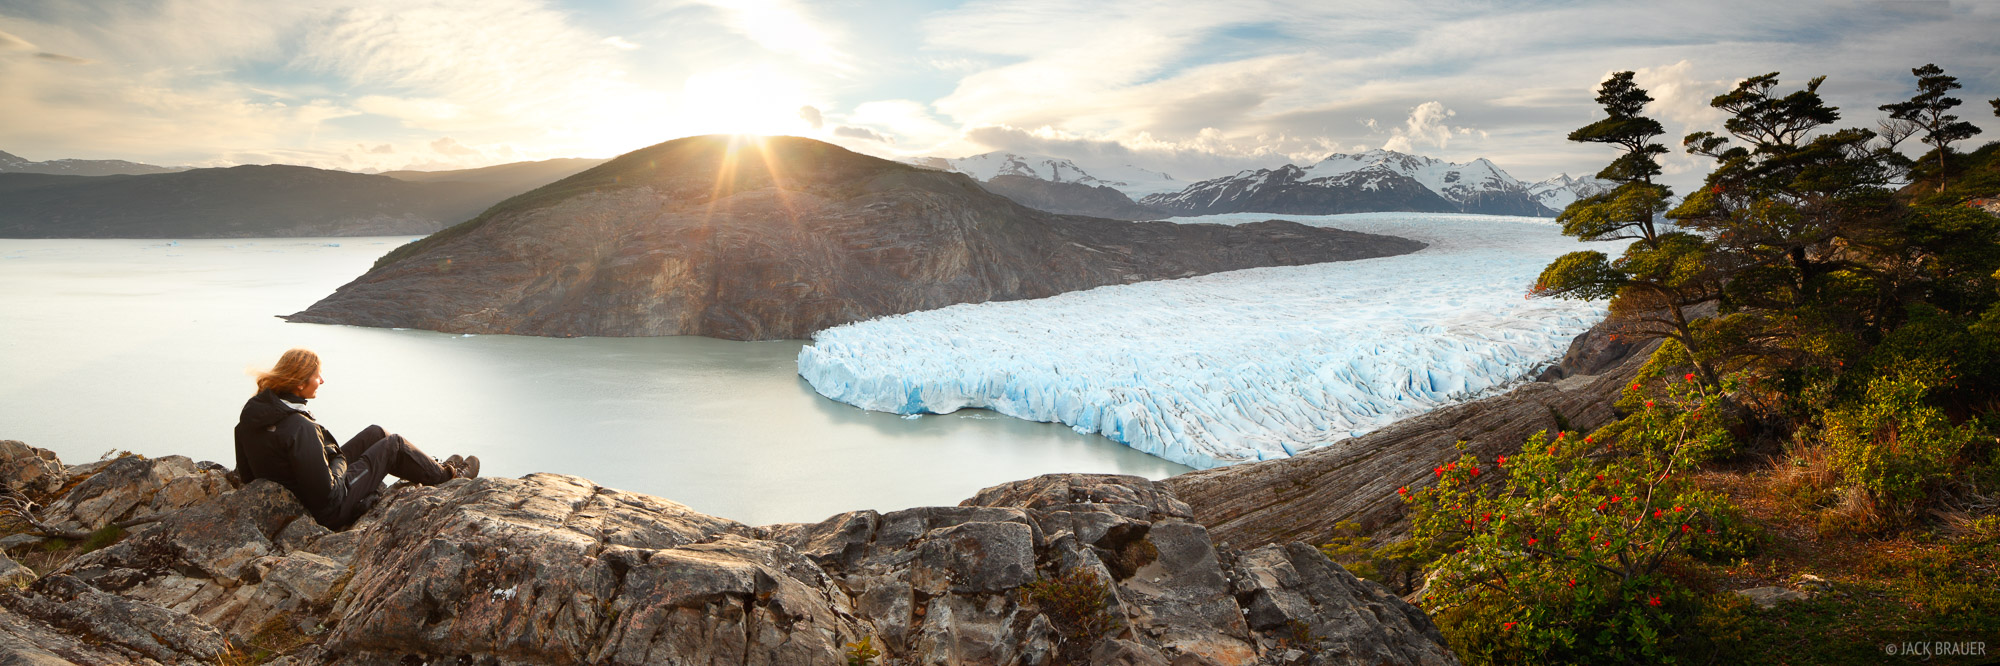 Glaciar Grey, Torres del Paine, Chile, panorama, sunset, photo